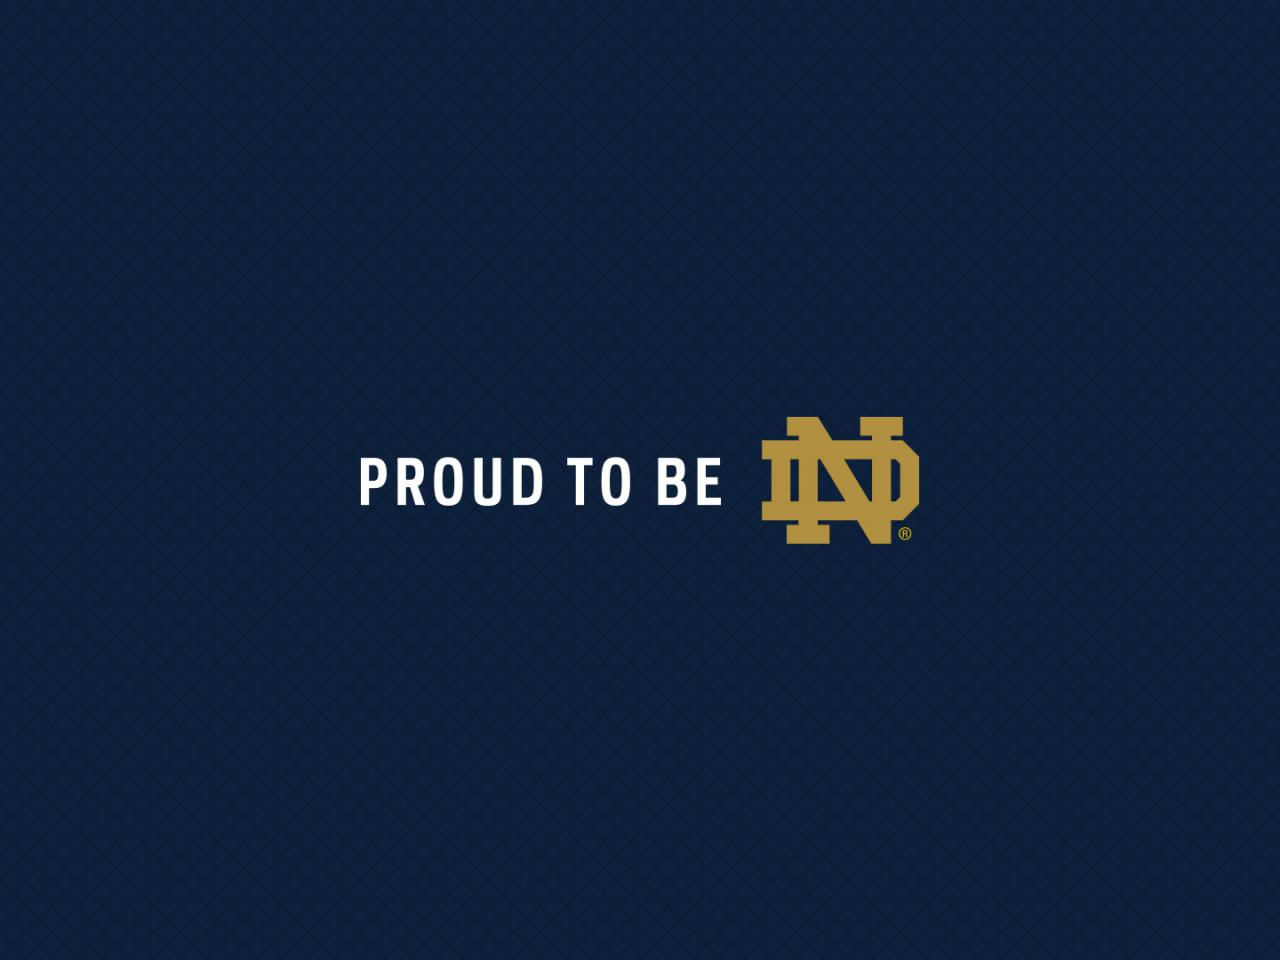 Notre Dame Football Logo   Proud To Be ND Wallpaper For Widescreen 1280x960